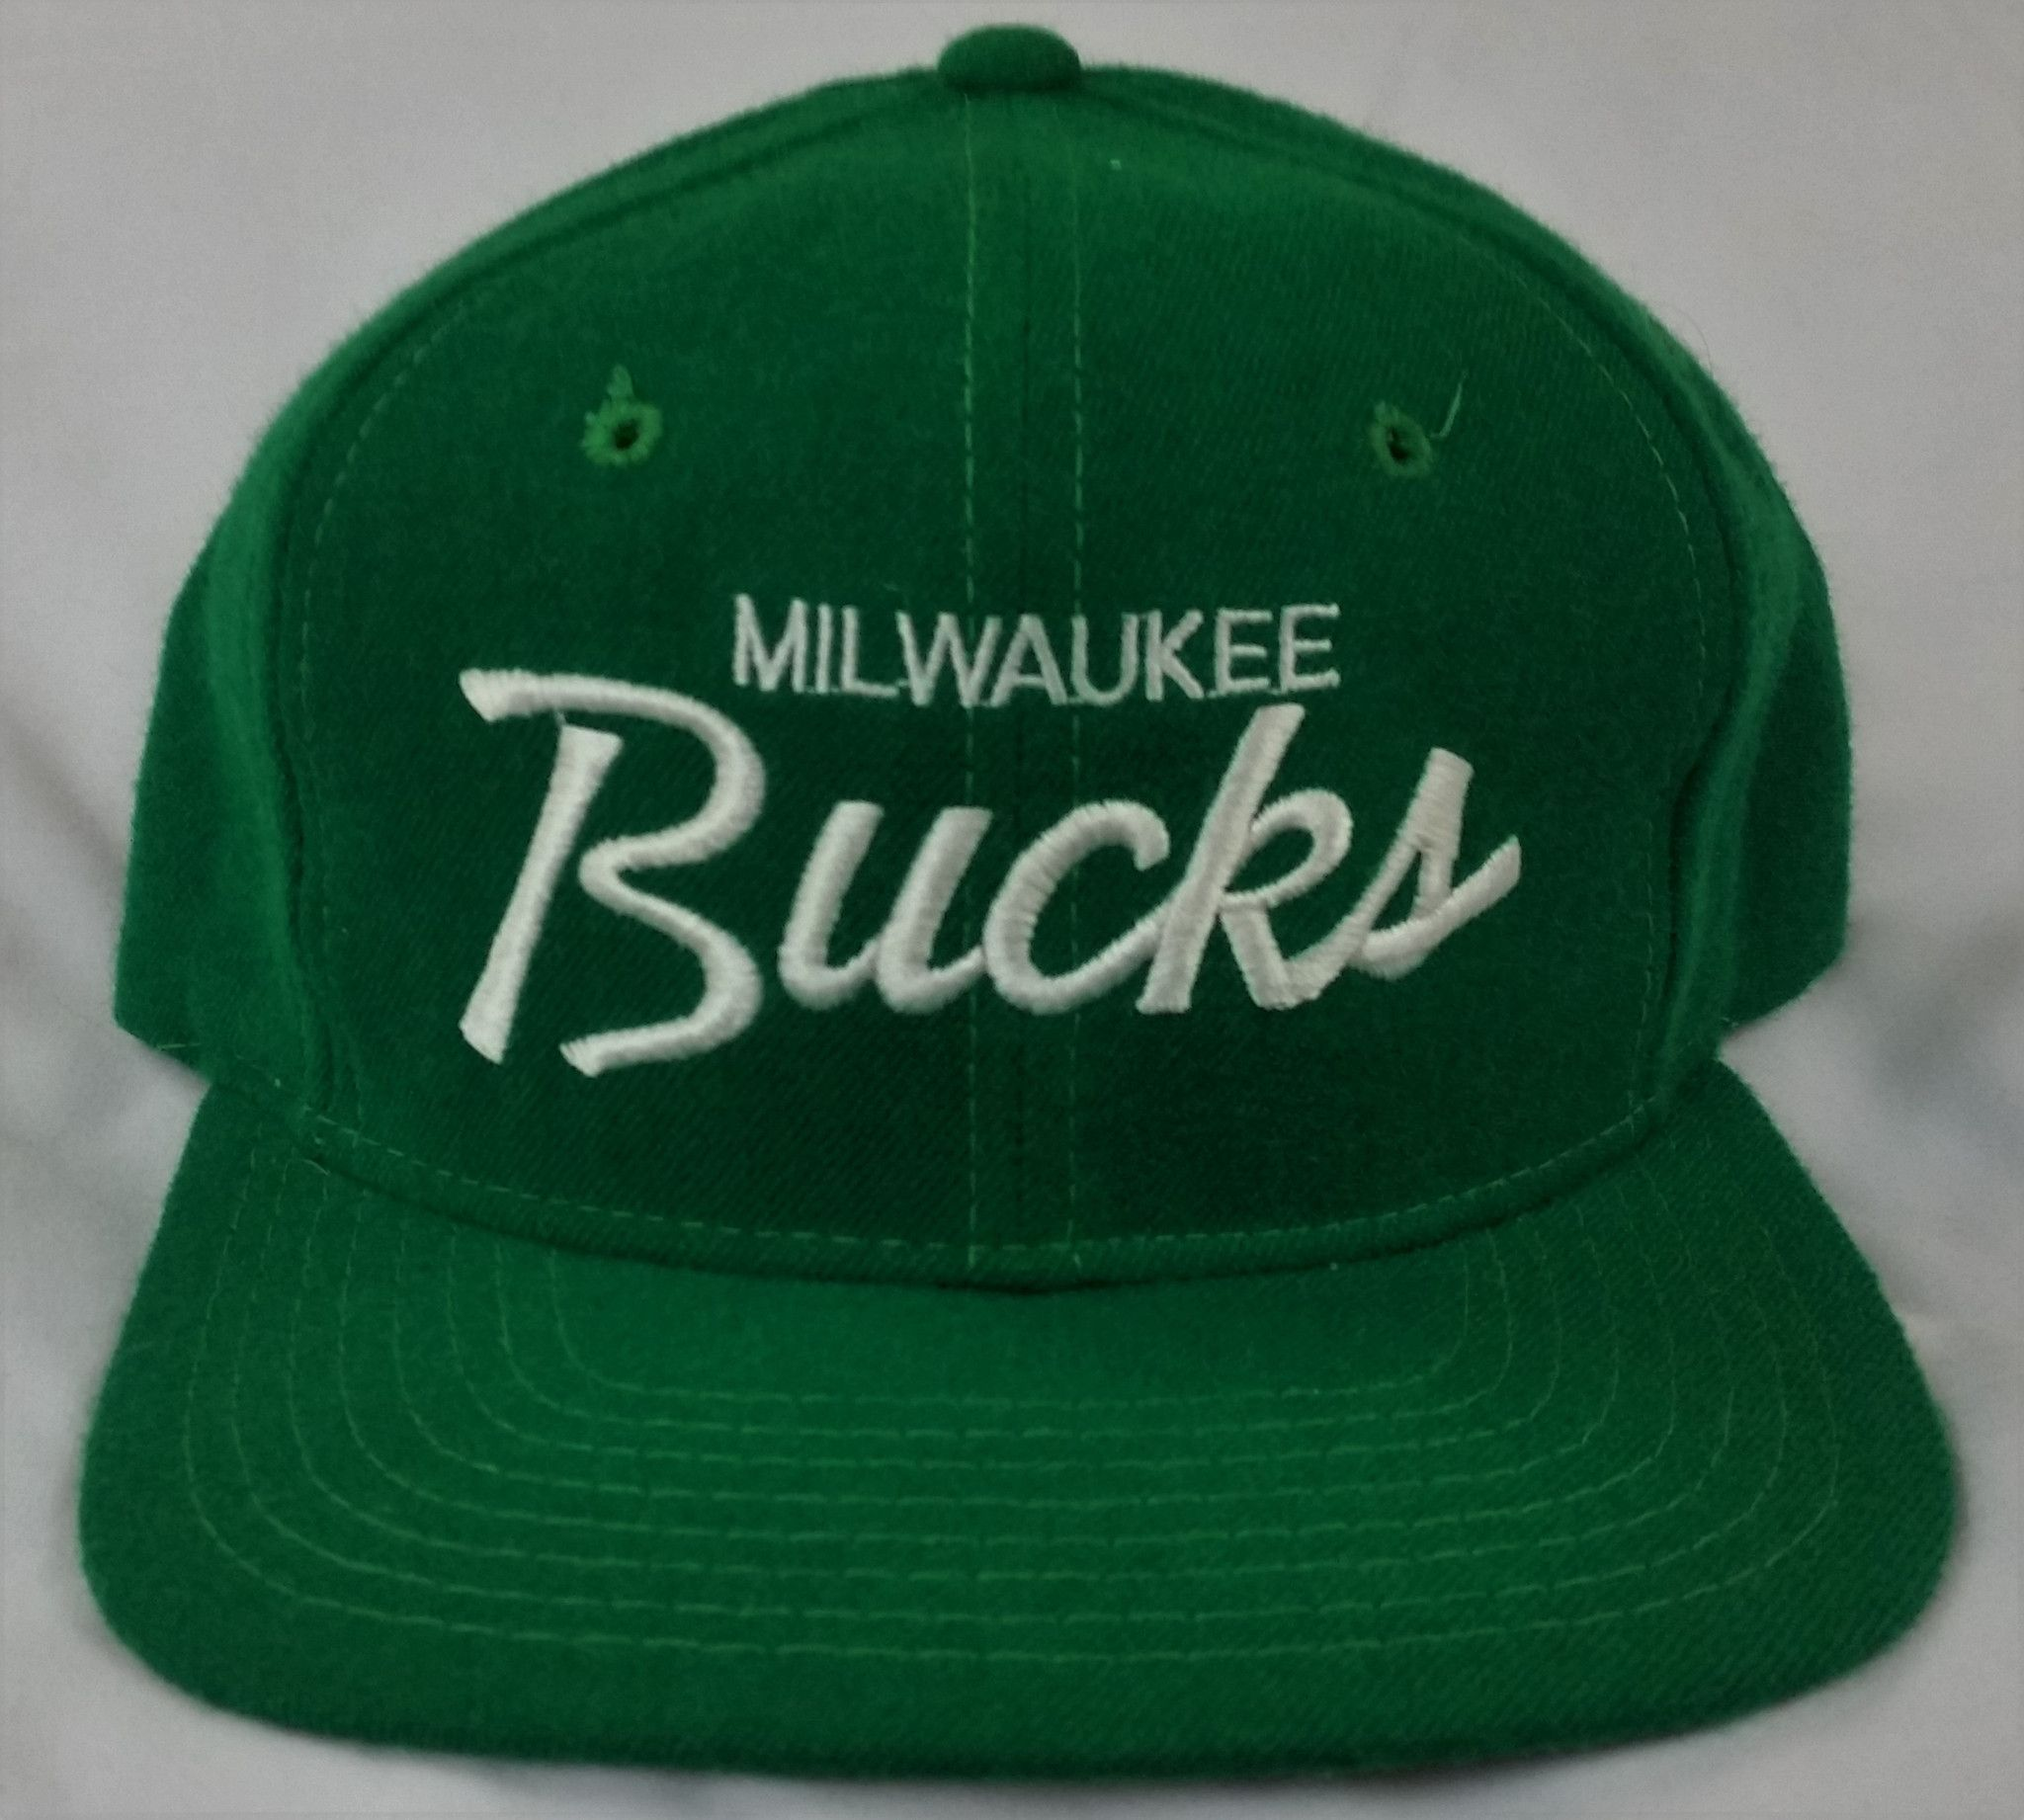 ff4e356b Milwaukee Bucks Vintage Snapback Sports Specialties Script Hat NBA Draft  Day Cap